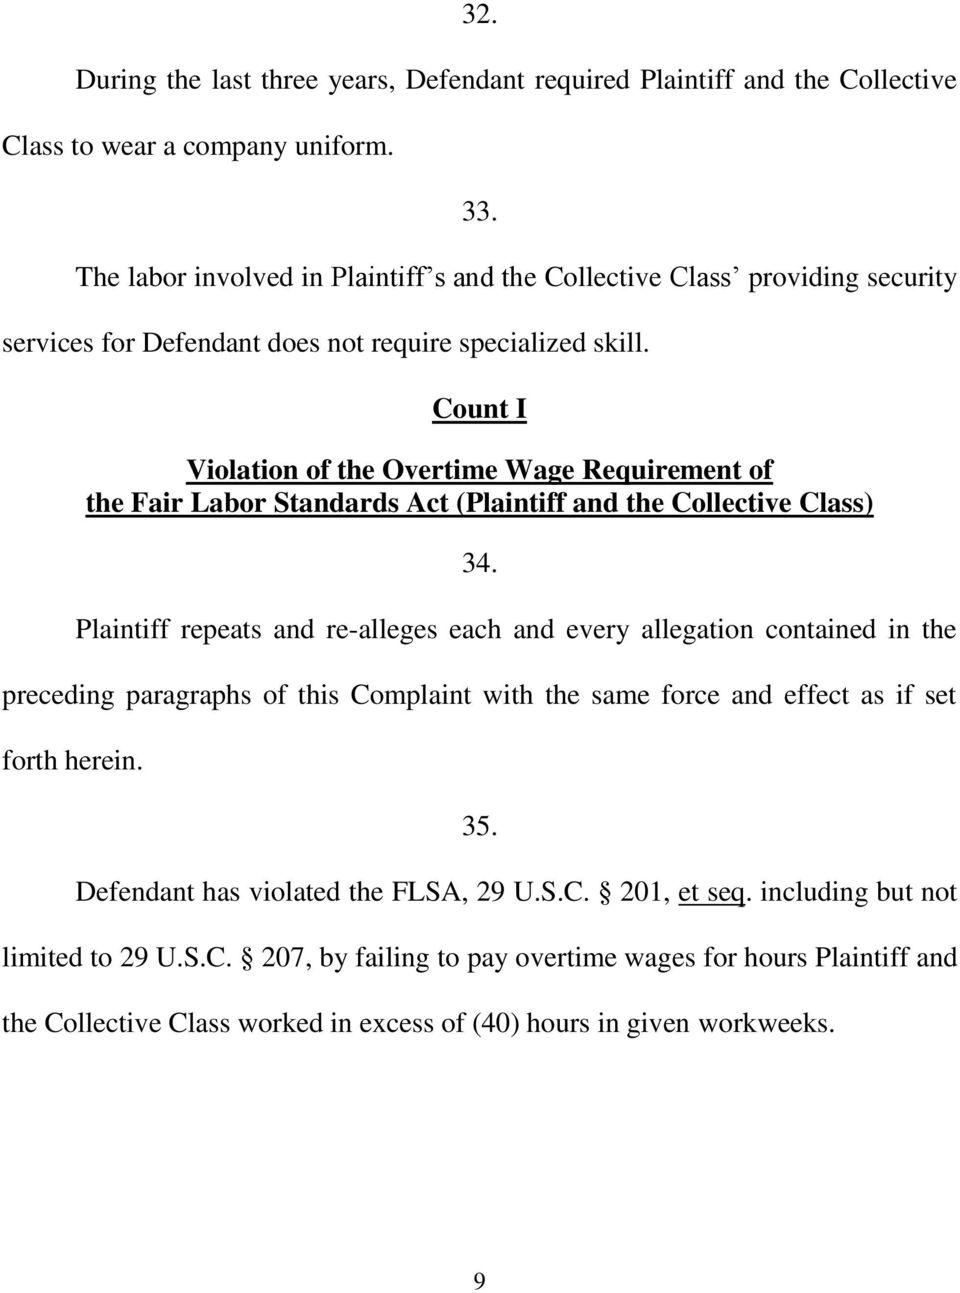 Count I Violation of the Overtime Wage Requirement of the Fair Labor Standards Act (Plaintiff and the Collective Class 34.